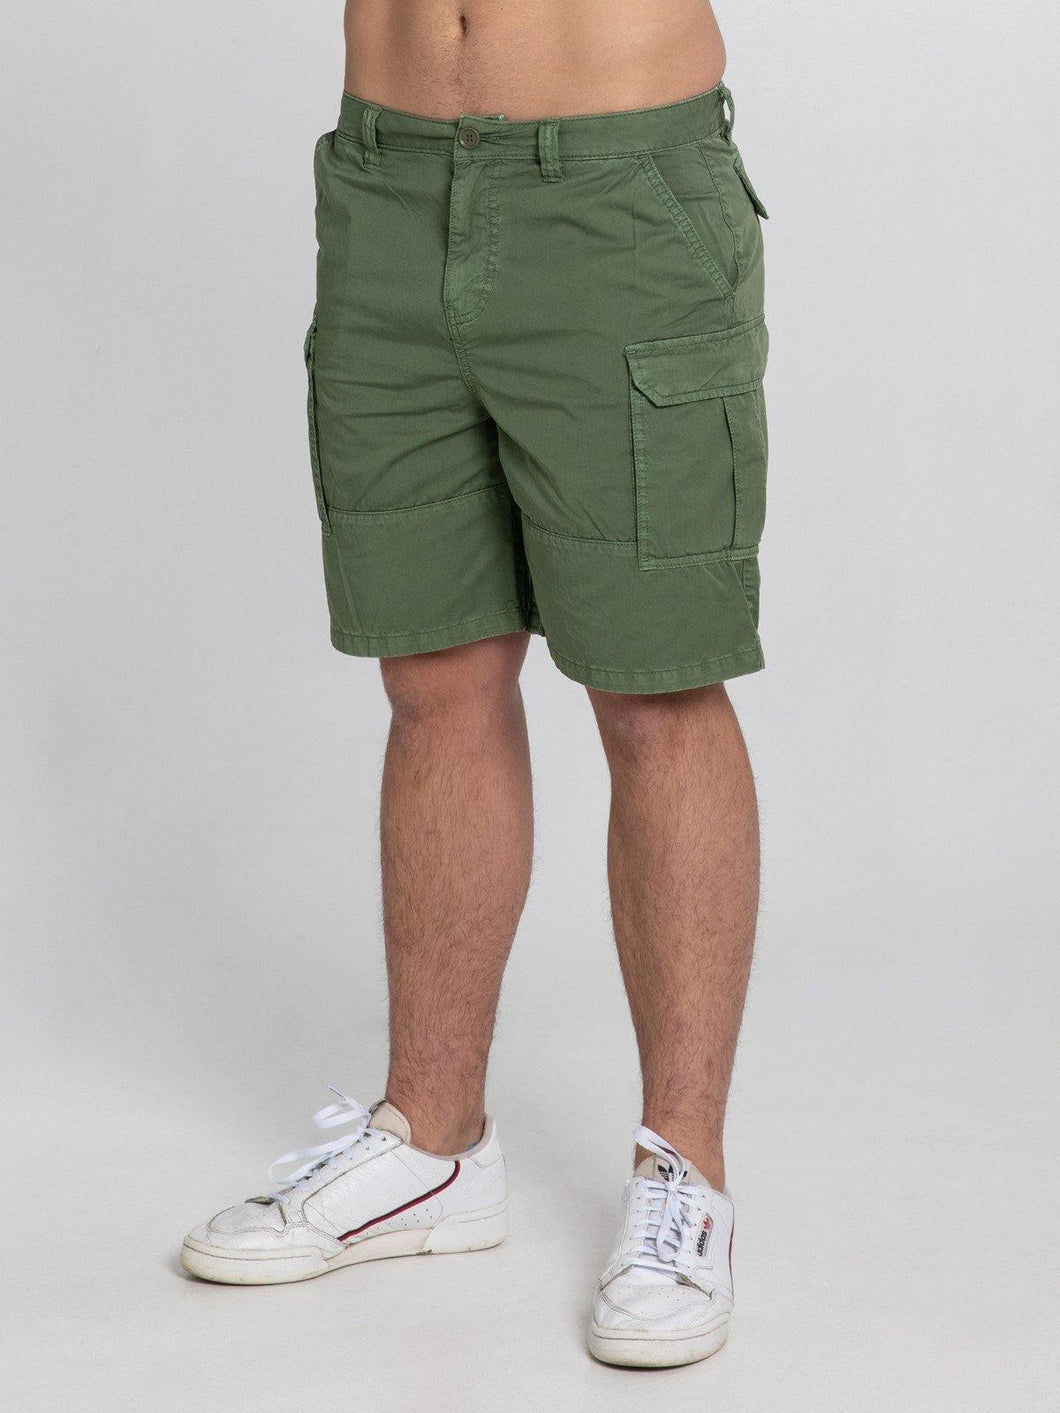 Andy Cargo Short by Elwood available at My Harley and Rose